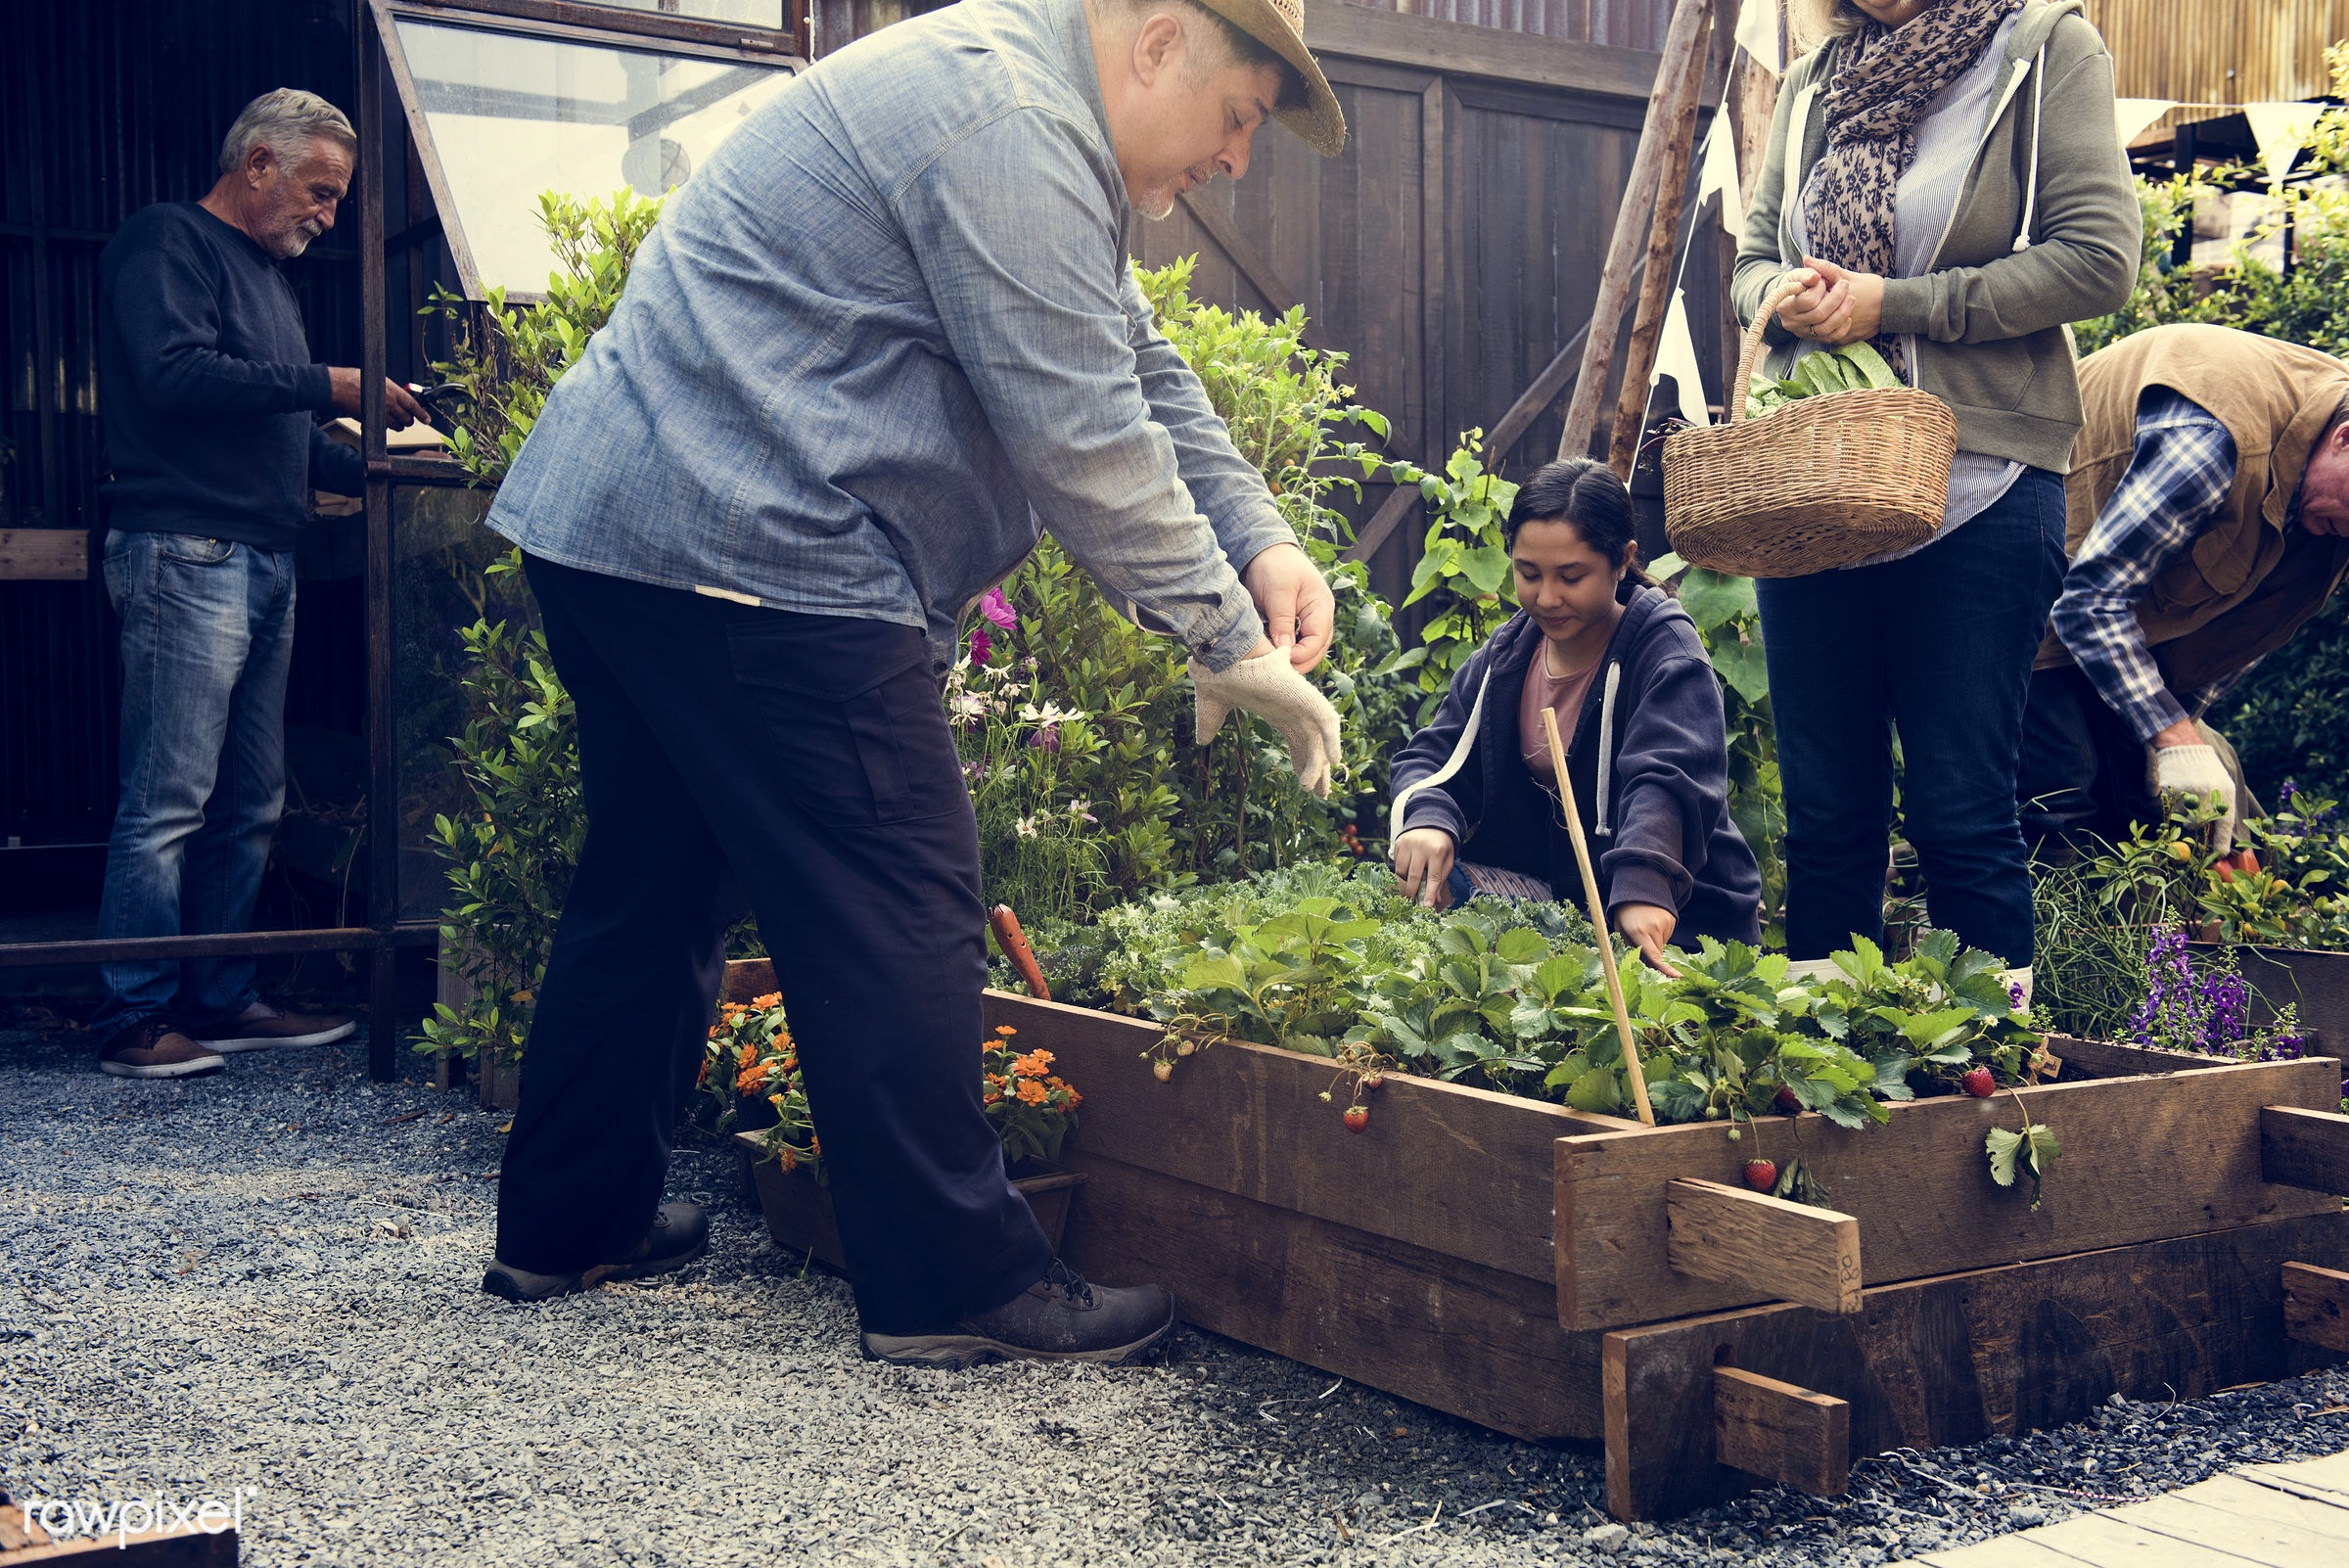 person, leaves, people, crop, farmer, nature, woman, cultivation, agriculture, planting, strawberry, present, gardener,...